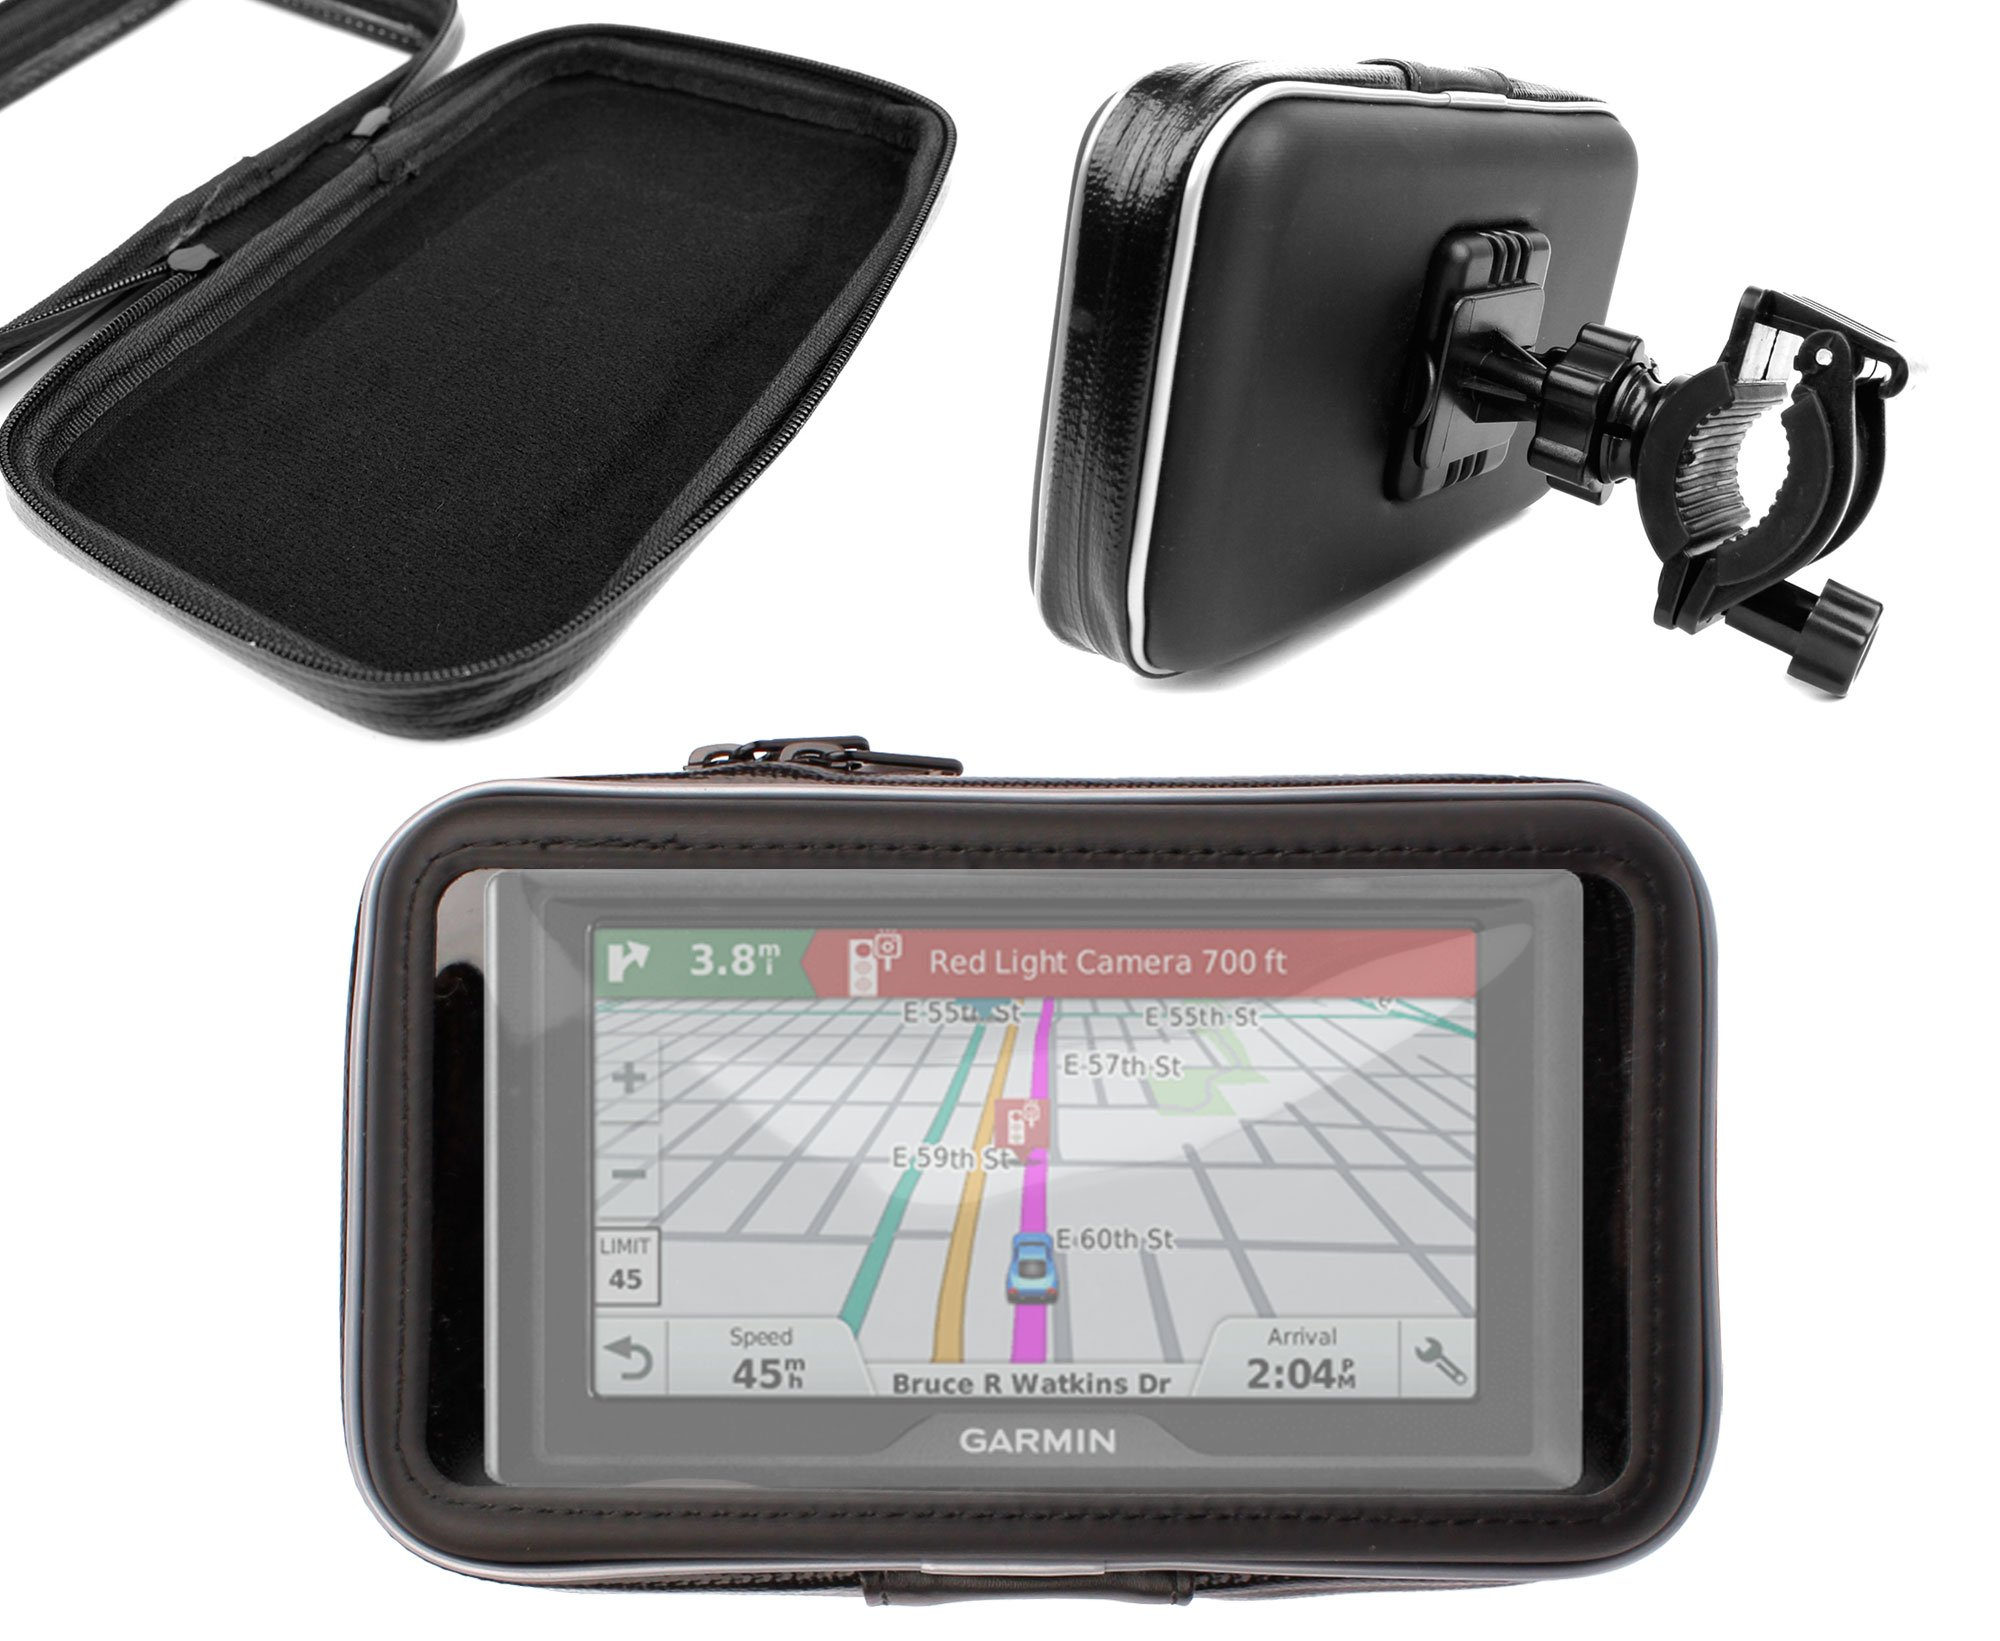 DURAGADGET Exclusive Water-Resistant & Shock-Absorbing Cyclists' Satnav Case & Bike Handlebar GPS Mount - Compatible with The New Garmin Drive 50 / 50LM / 50LMT / 50LMT CE